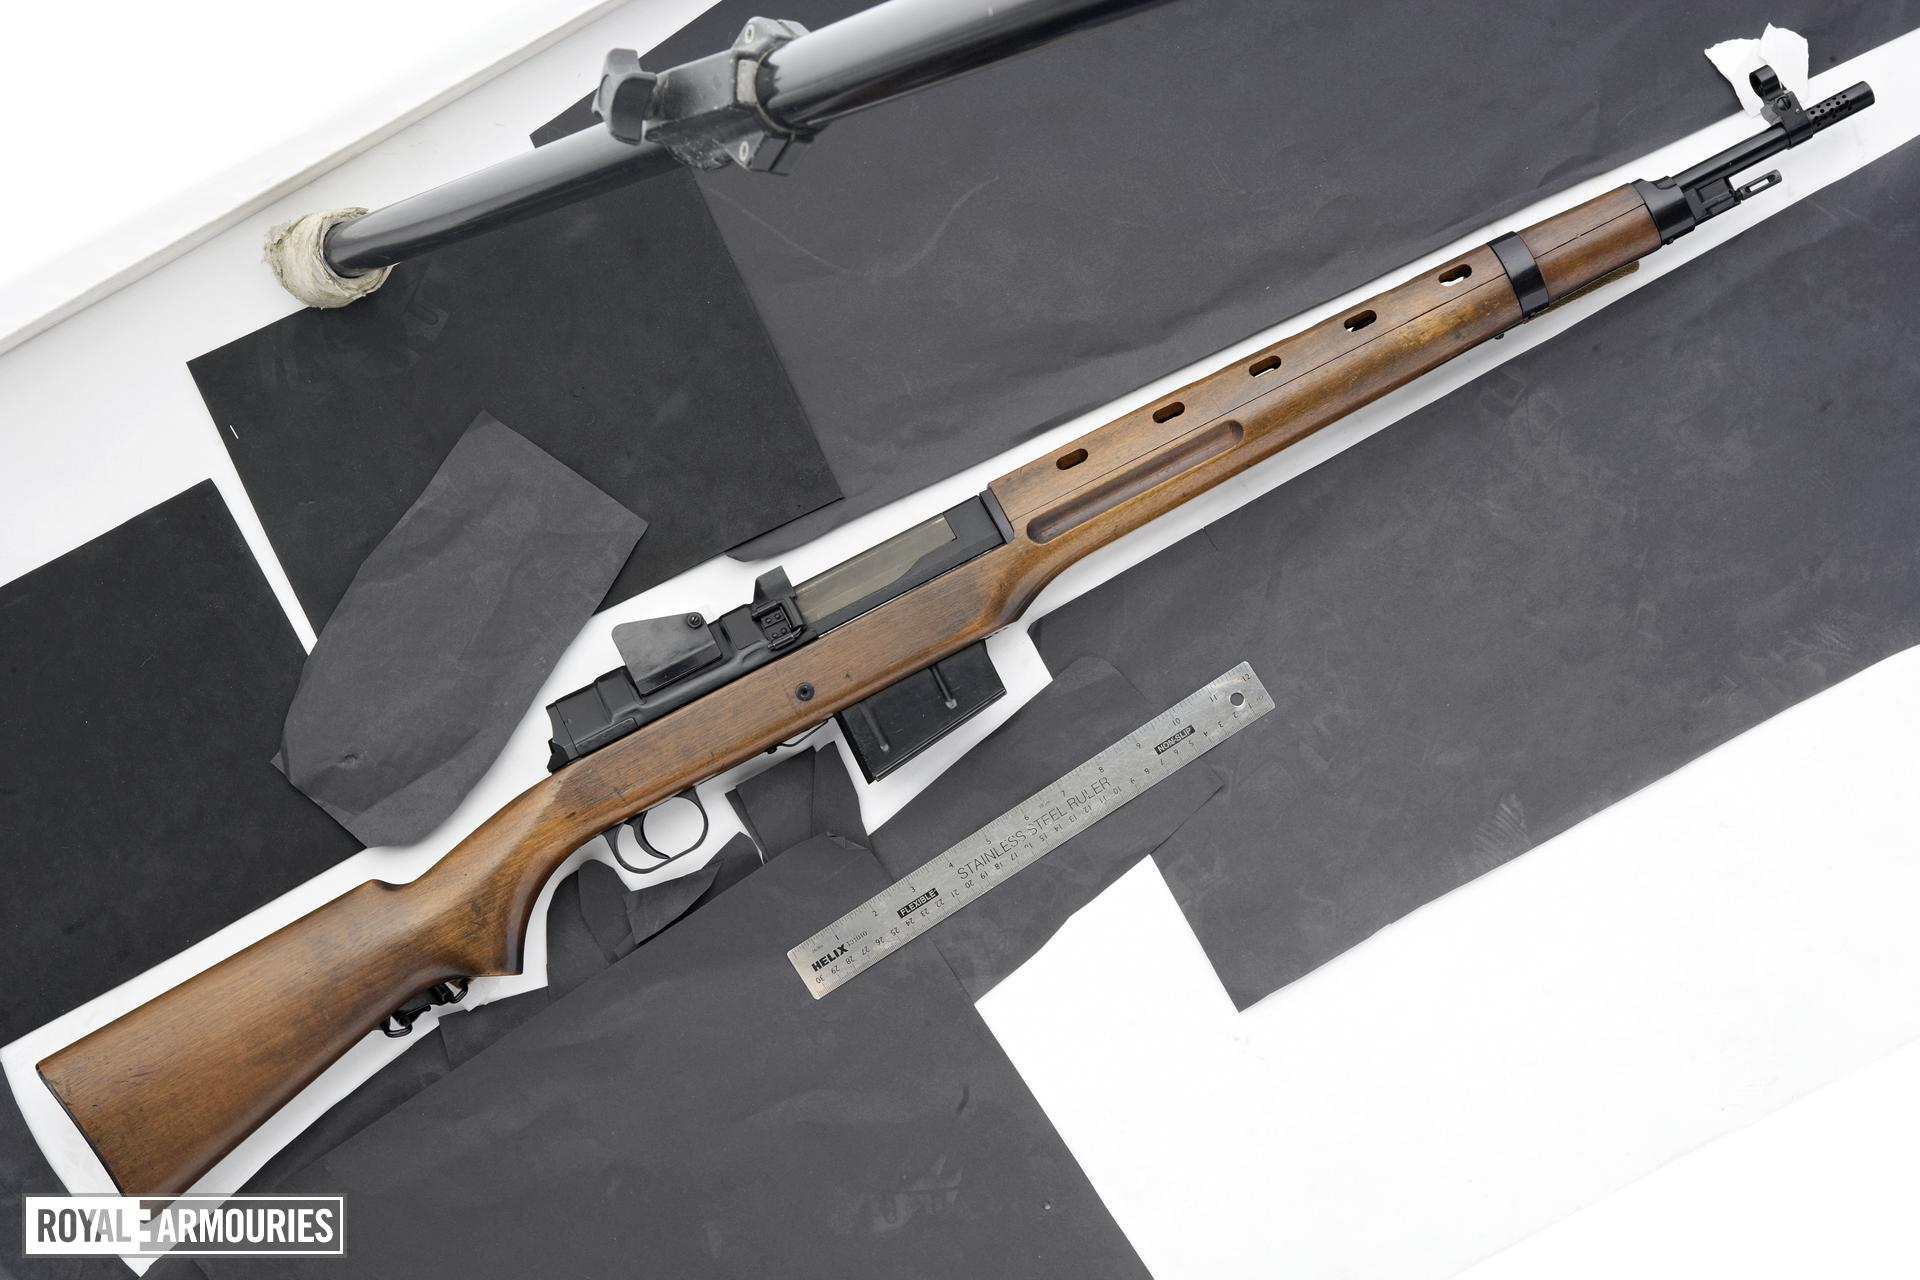 Centrefire self-loading rifle - Madsen Ljungman